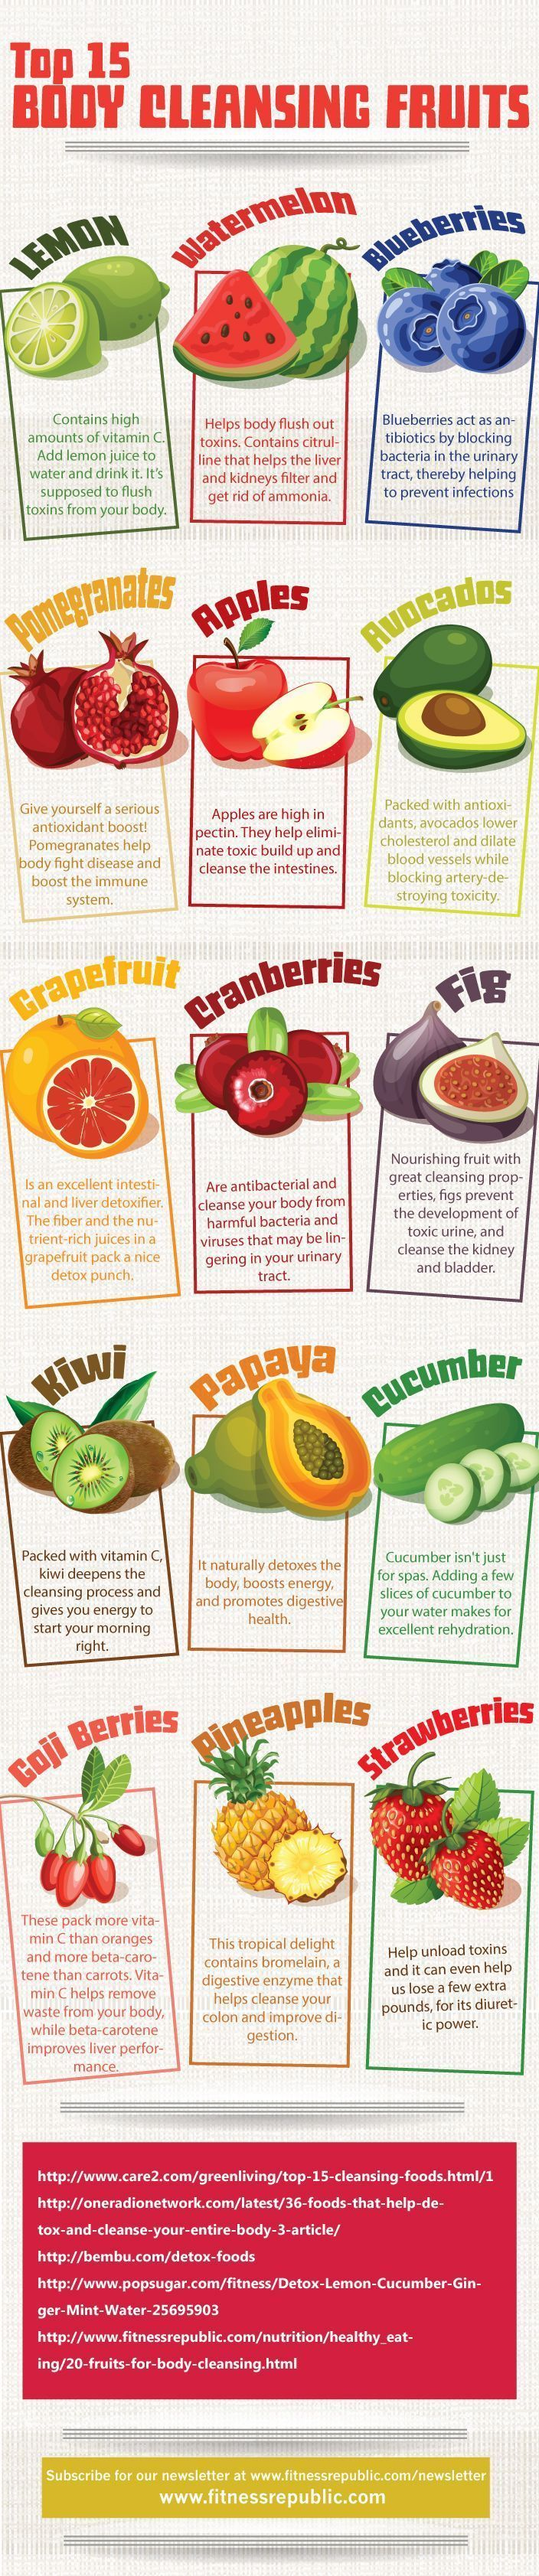 15 Body Cleansing Fruits :Fruit fasts or cleanses are said to allow your digestive system to detoxify, get rid of toxins and wastes, and help you to naturally restore harmony and balance to your entire body. In this infographic found on Pinterest, we are introduced to what are said to be the Top 15 Body […] To truly observe best outcomes from any eating routine arrangement you utilize, you have to take in a couple of 'eat less and well rules'.  These are rules that must be taken in the…